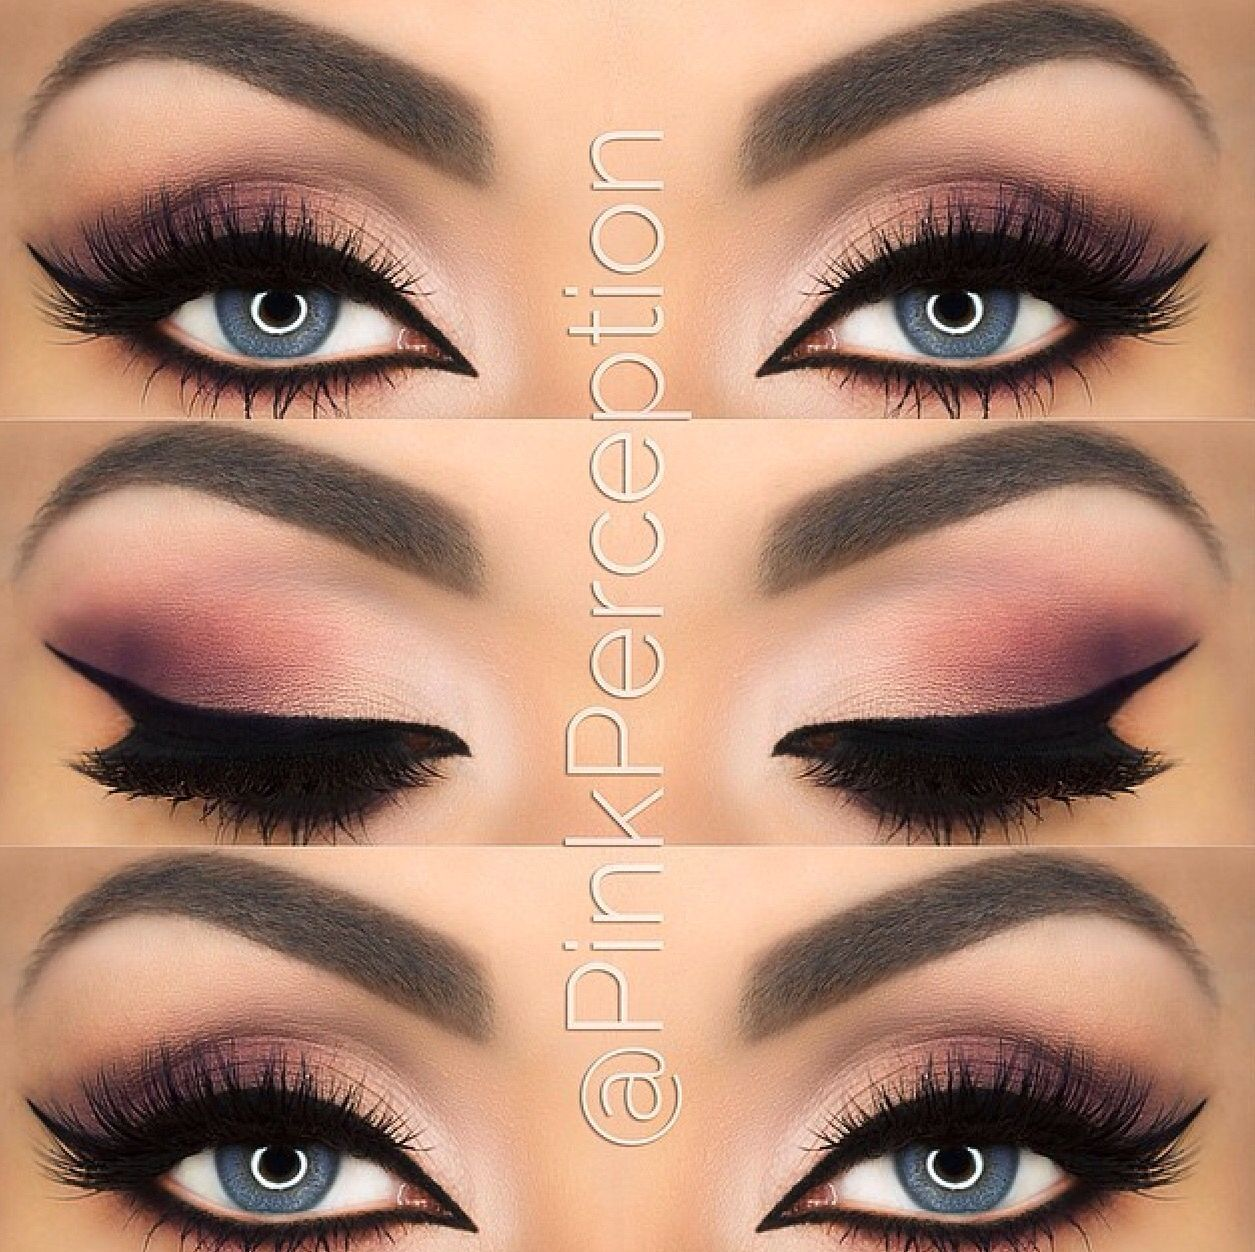 Pinterest Branmakeyou Tattoo Street Fashion Food Sport Fitness Cosmetics Nails And Much More In 2020 Eye Makeup Makeup Eyeshadow Makeup